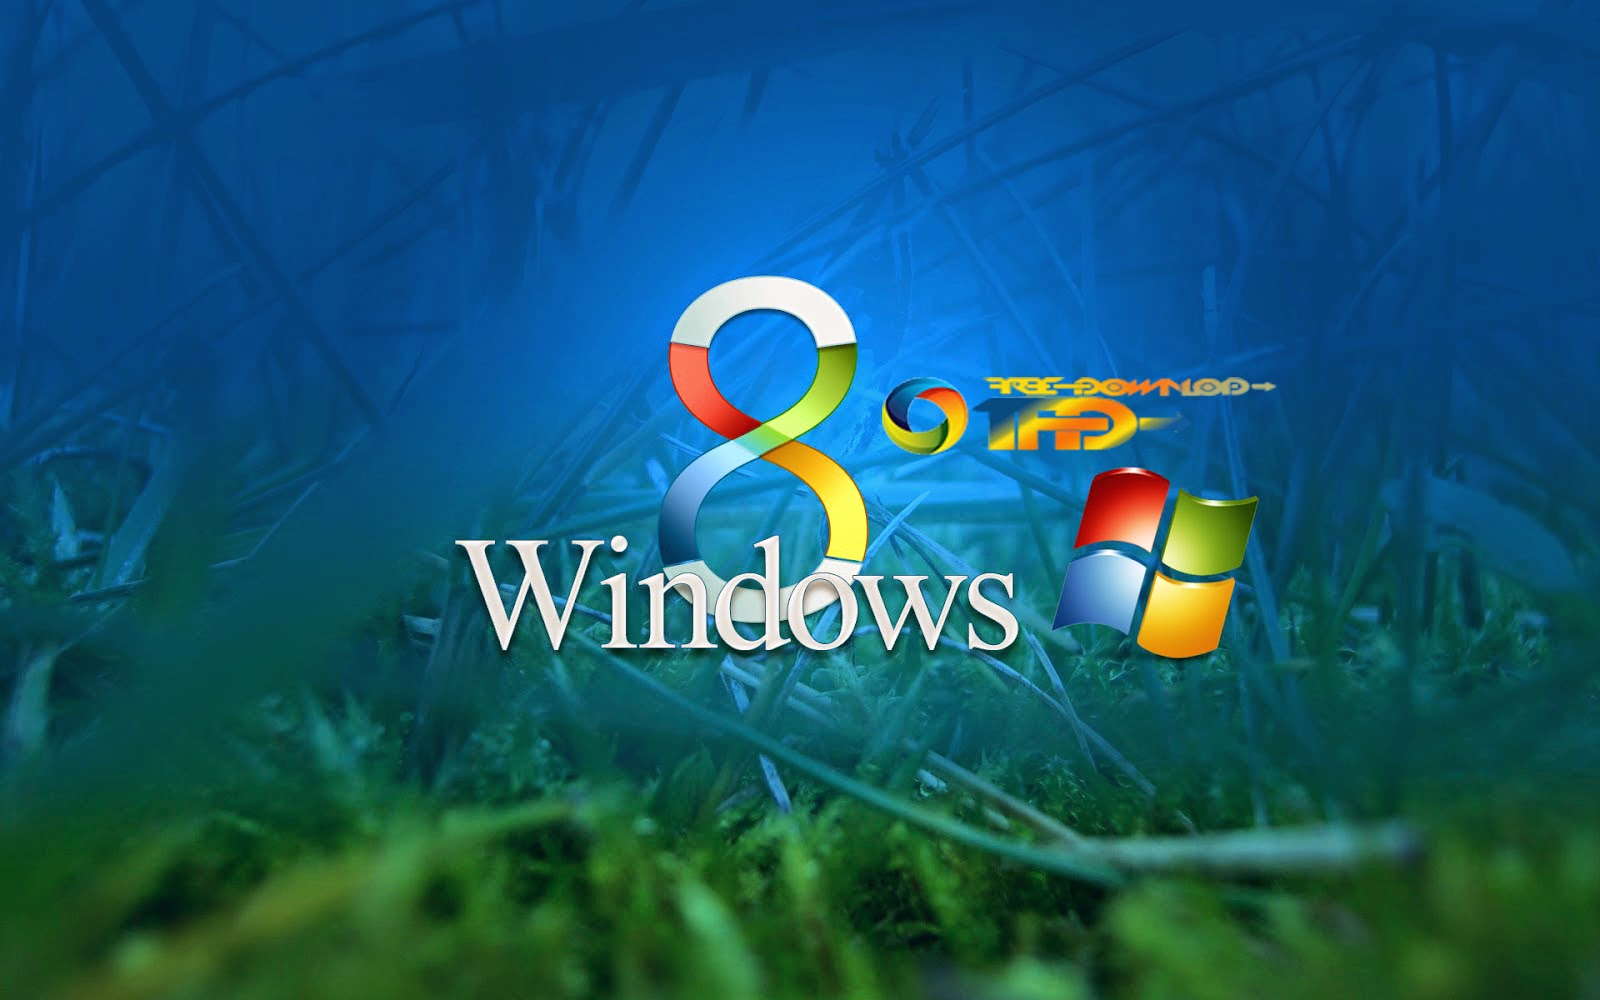 Download Windows 8 Pro ISO 32 Bit / 64 Bit Free Serial Number Key